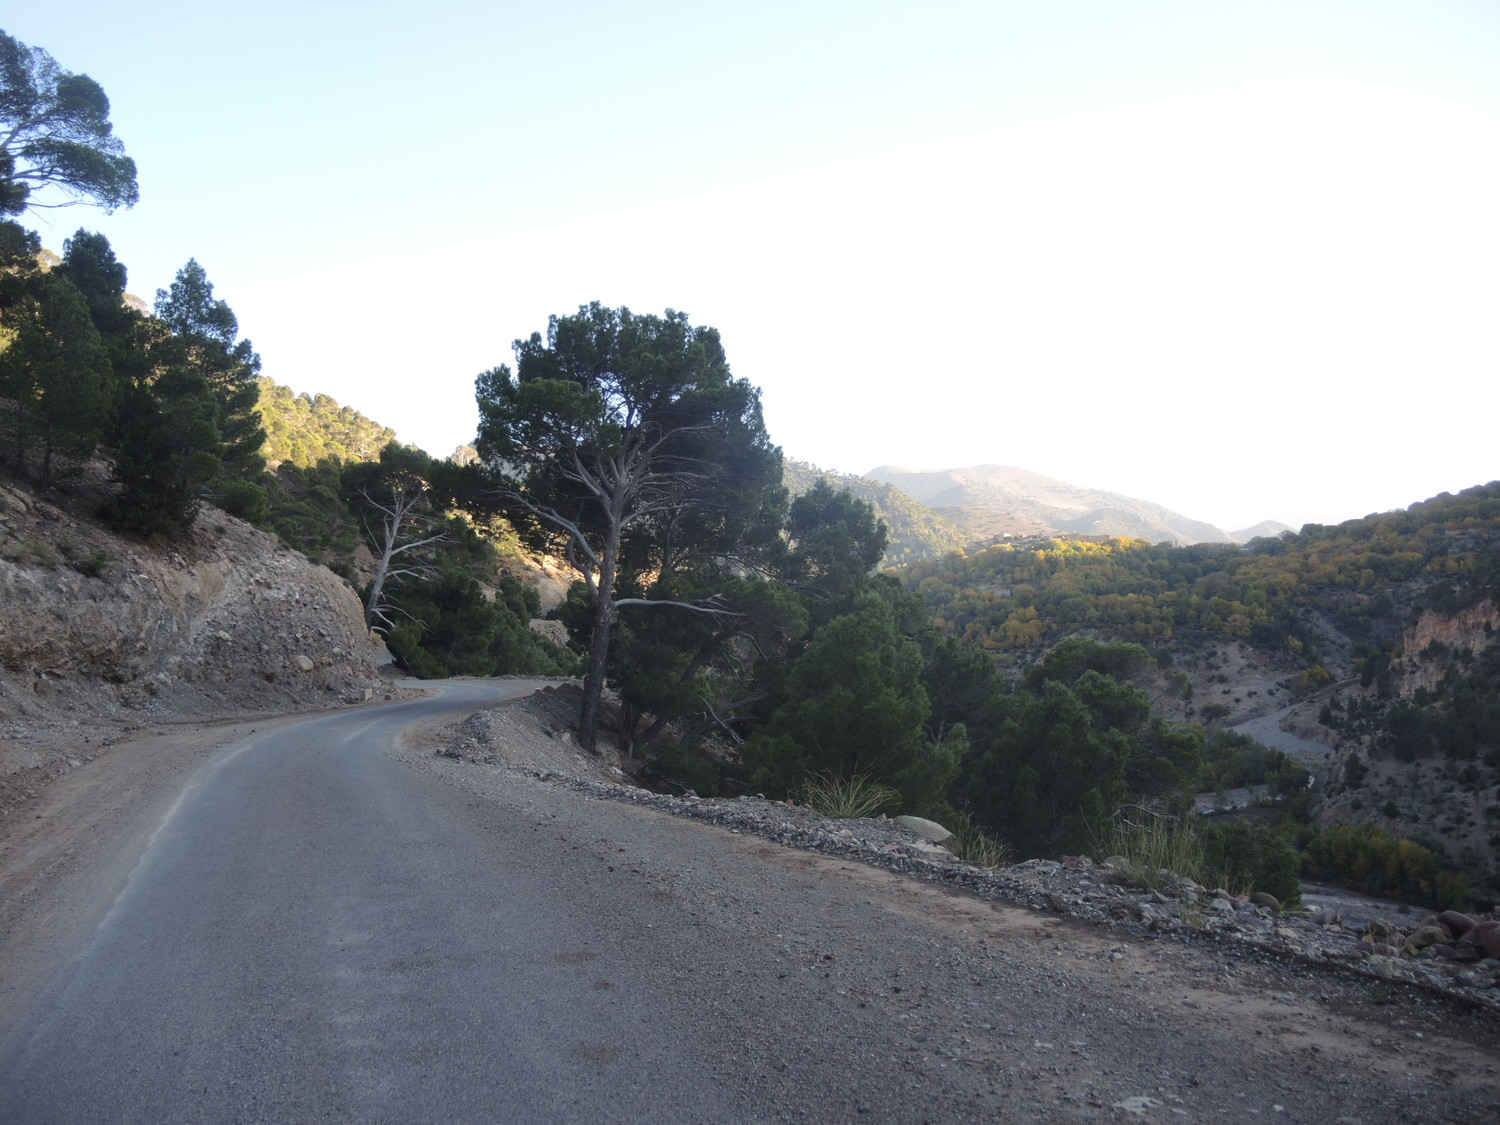 R307 road through the Atlas Mountains